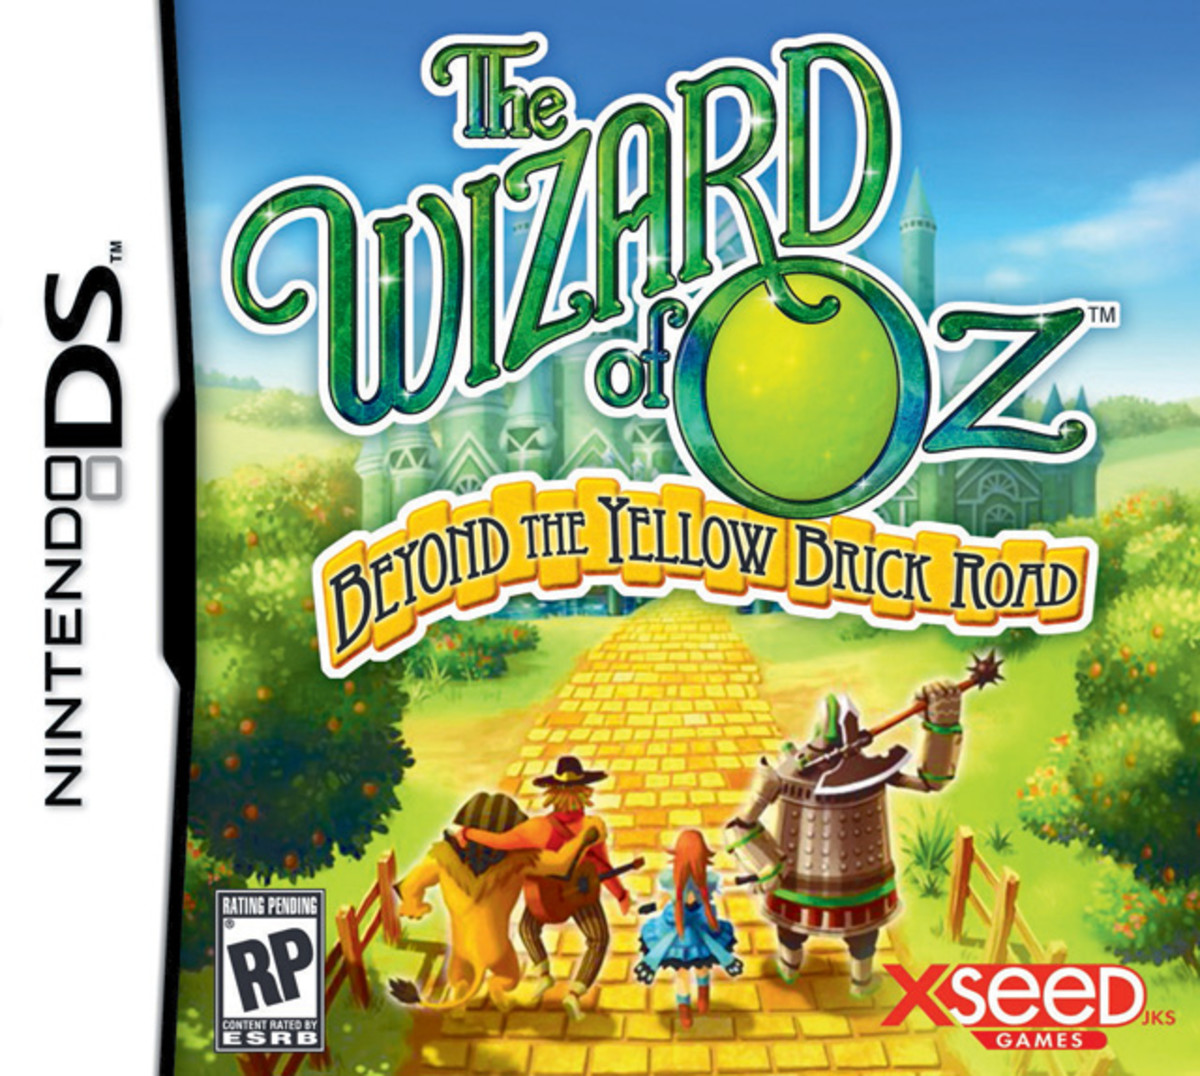 The Wizard of Oz: Beyond the Yellow Brick Road box art